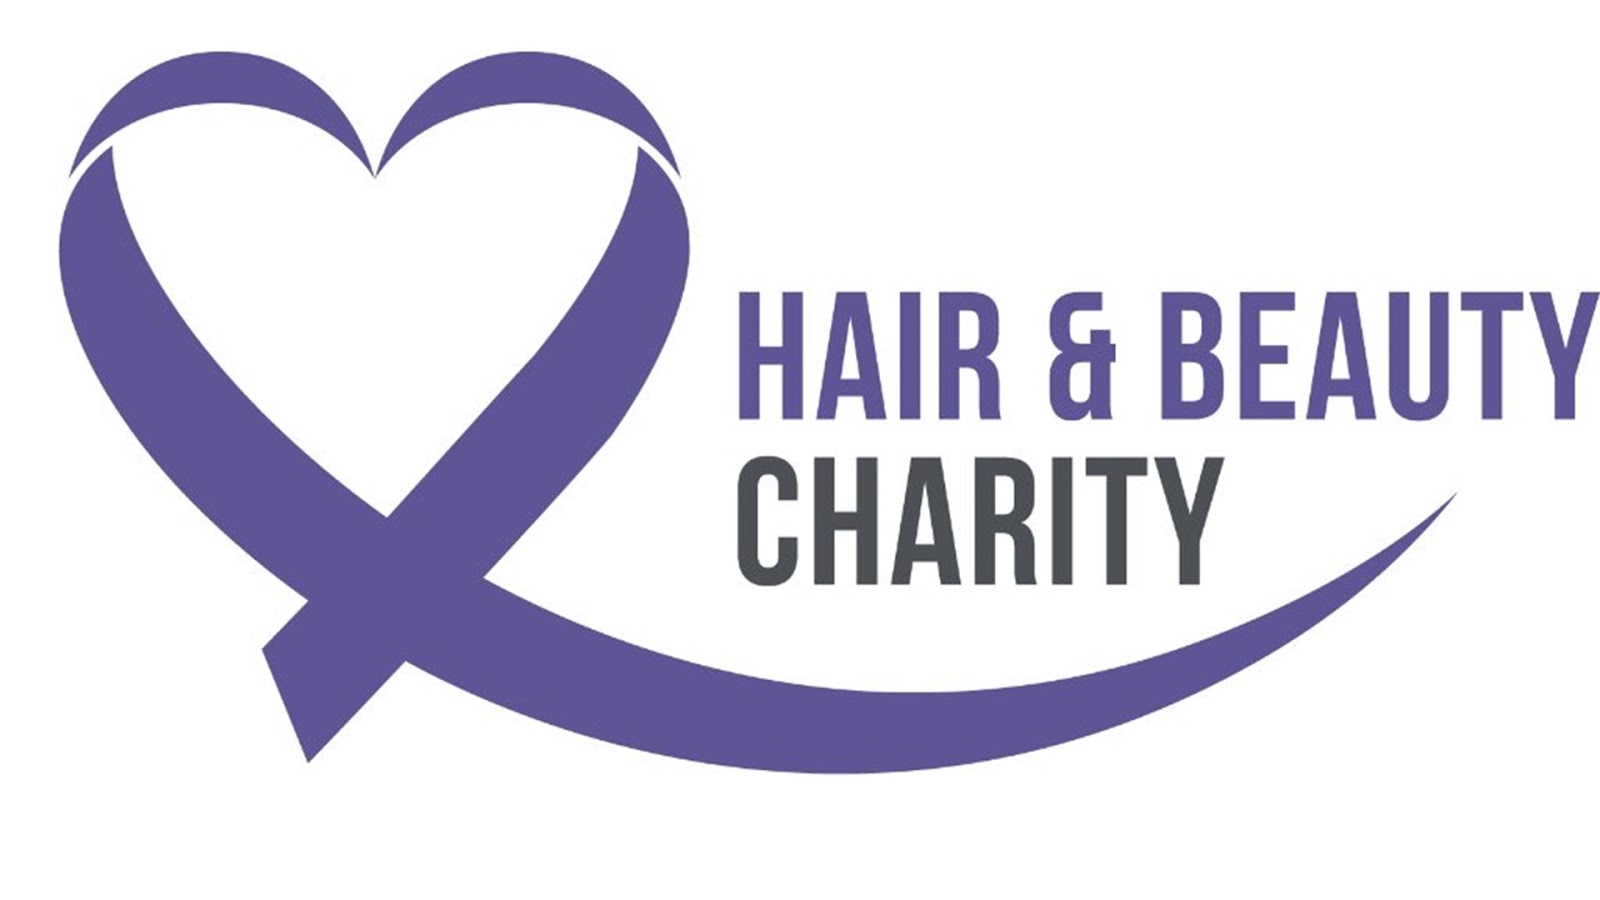 Hair & beauty charity